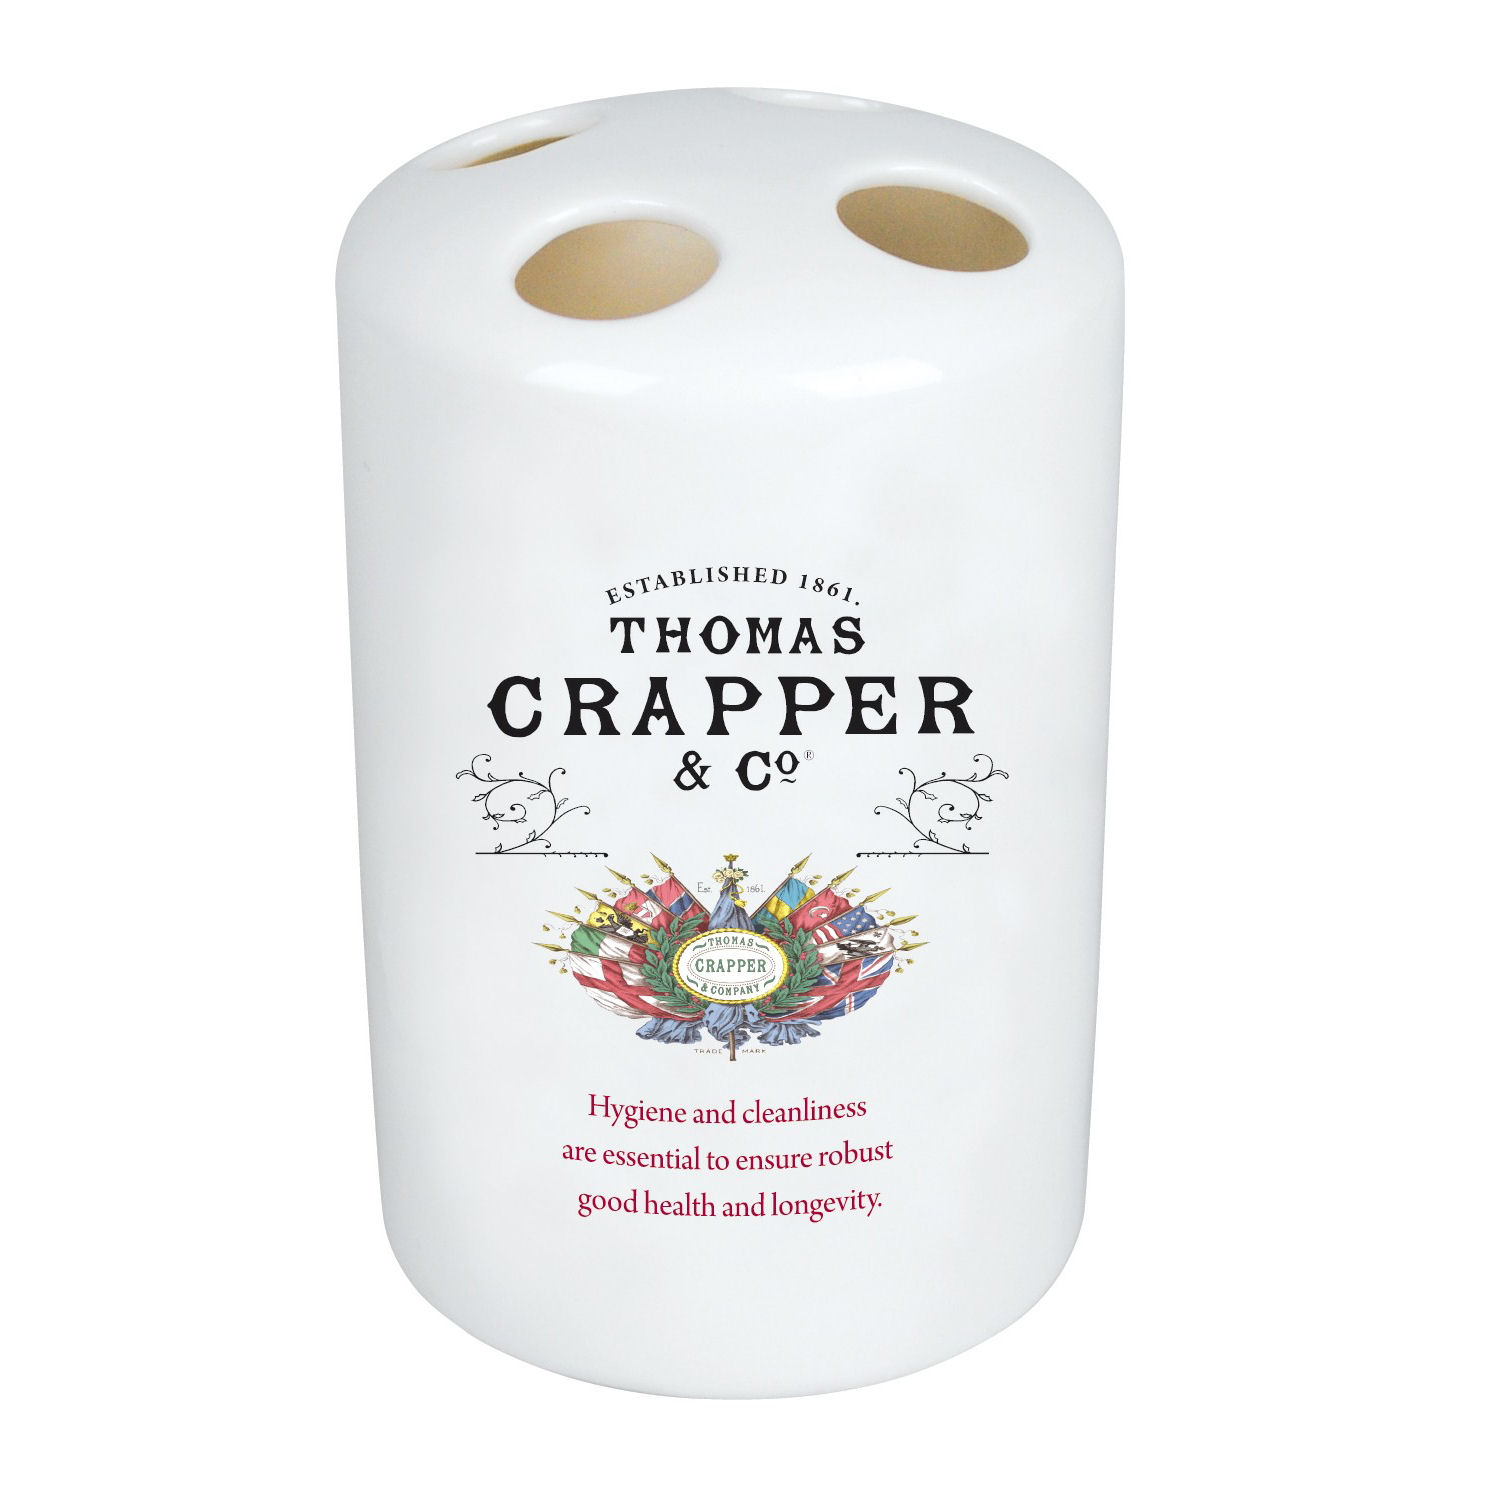 NEW CERAMIC THOMAS CRAPPER TOOTHBRUSH HOLDER VINTAGE ADVERT OPIE SHABBY CHIC